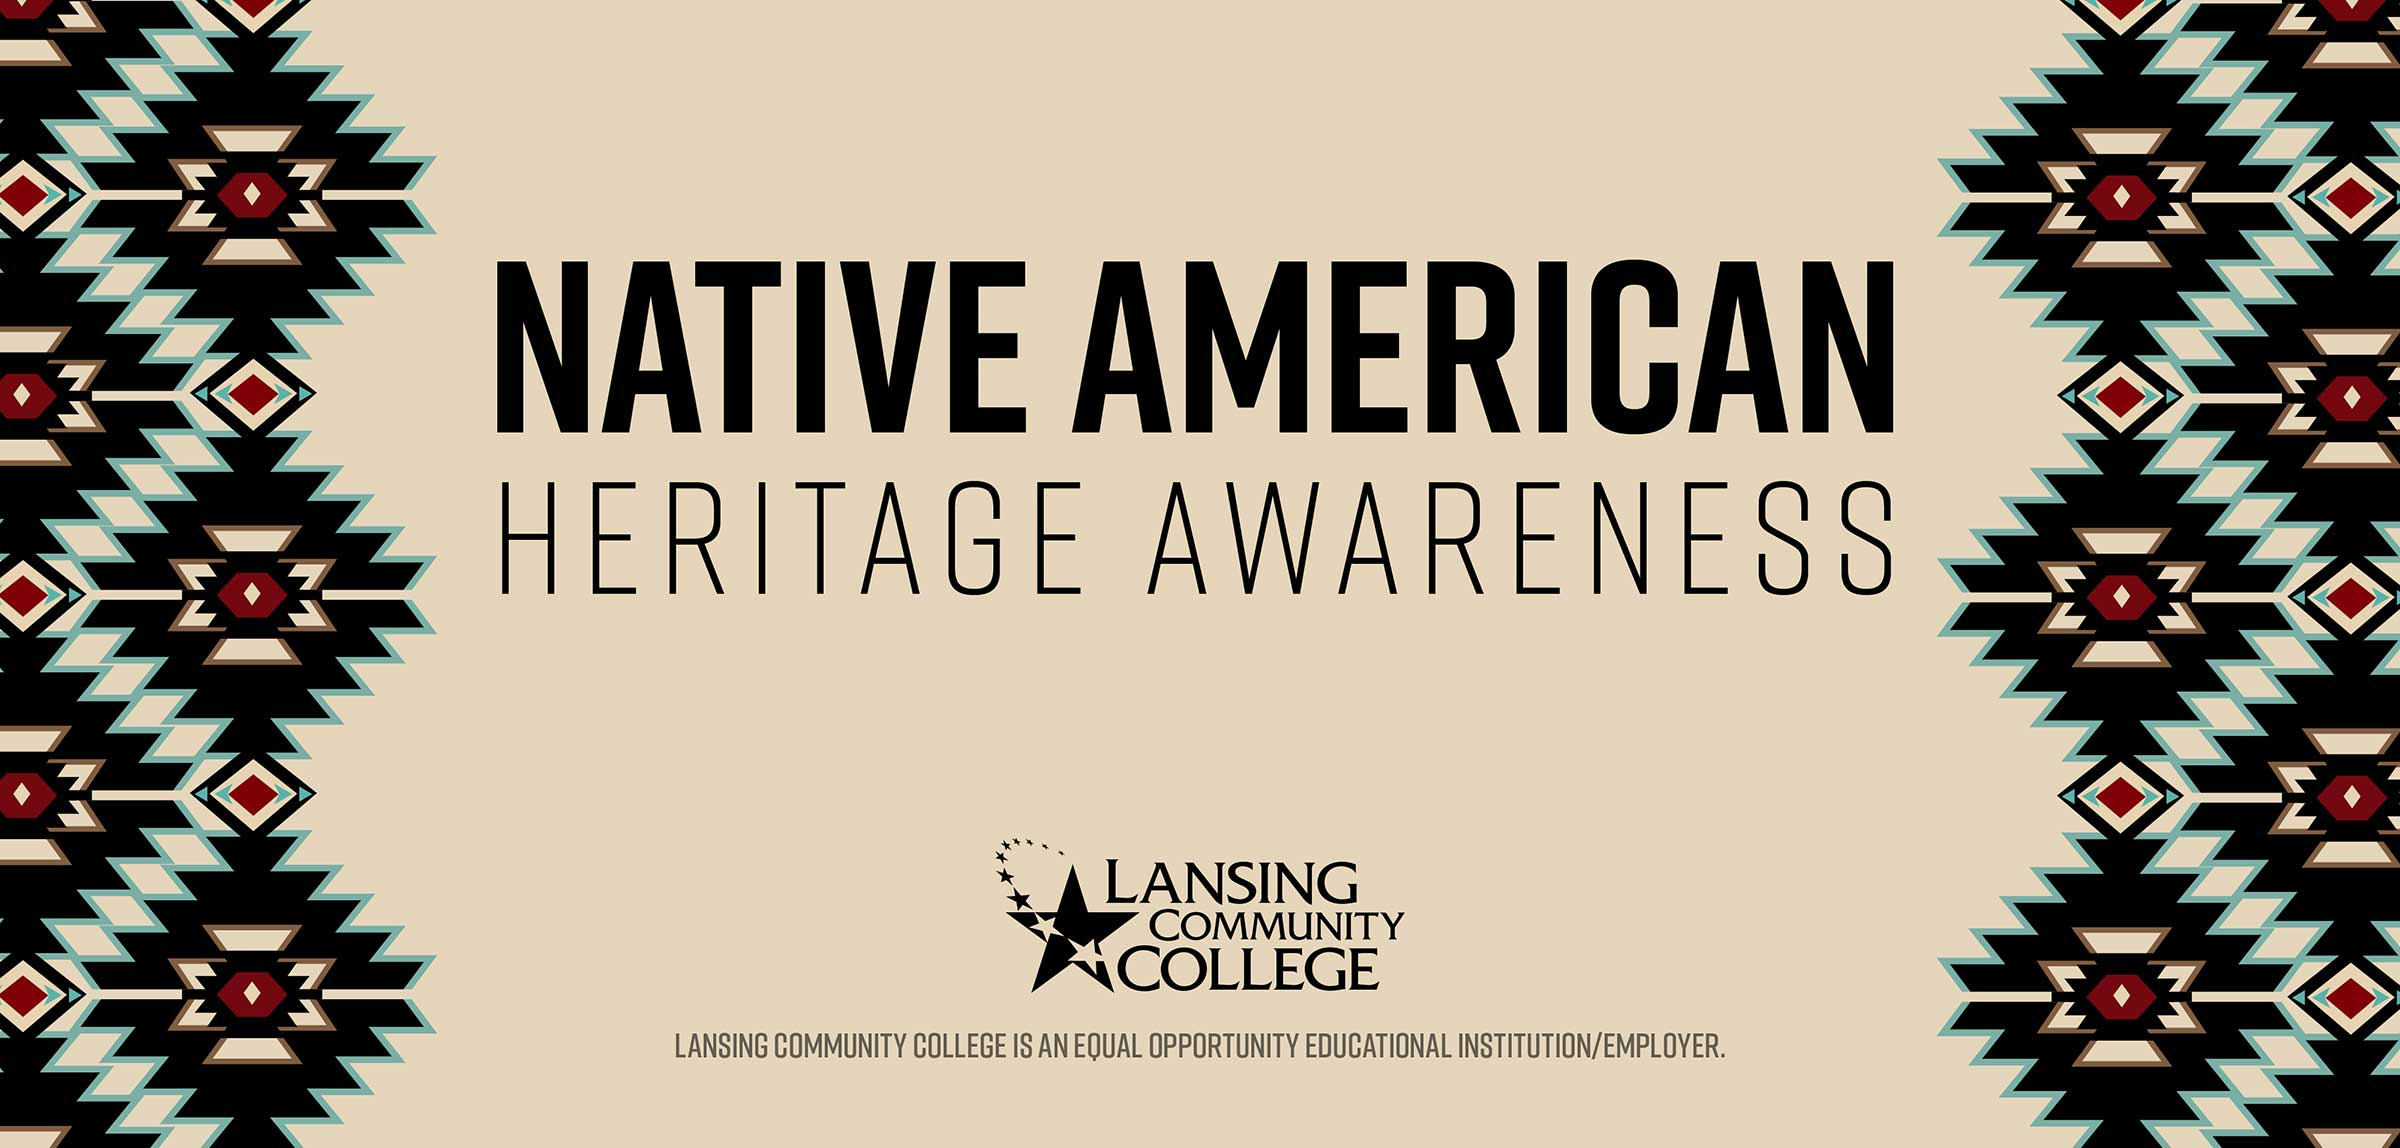 Lansing Community College is participating in the month-long celebration of Native American Heritage